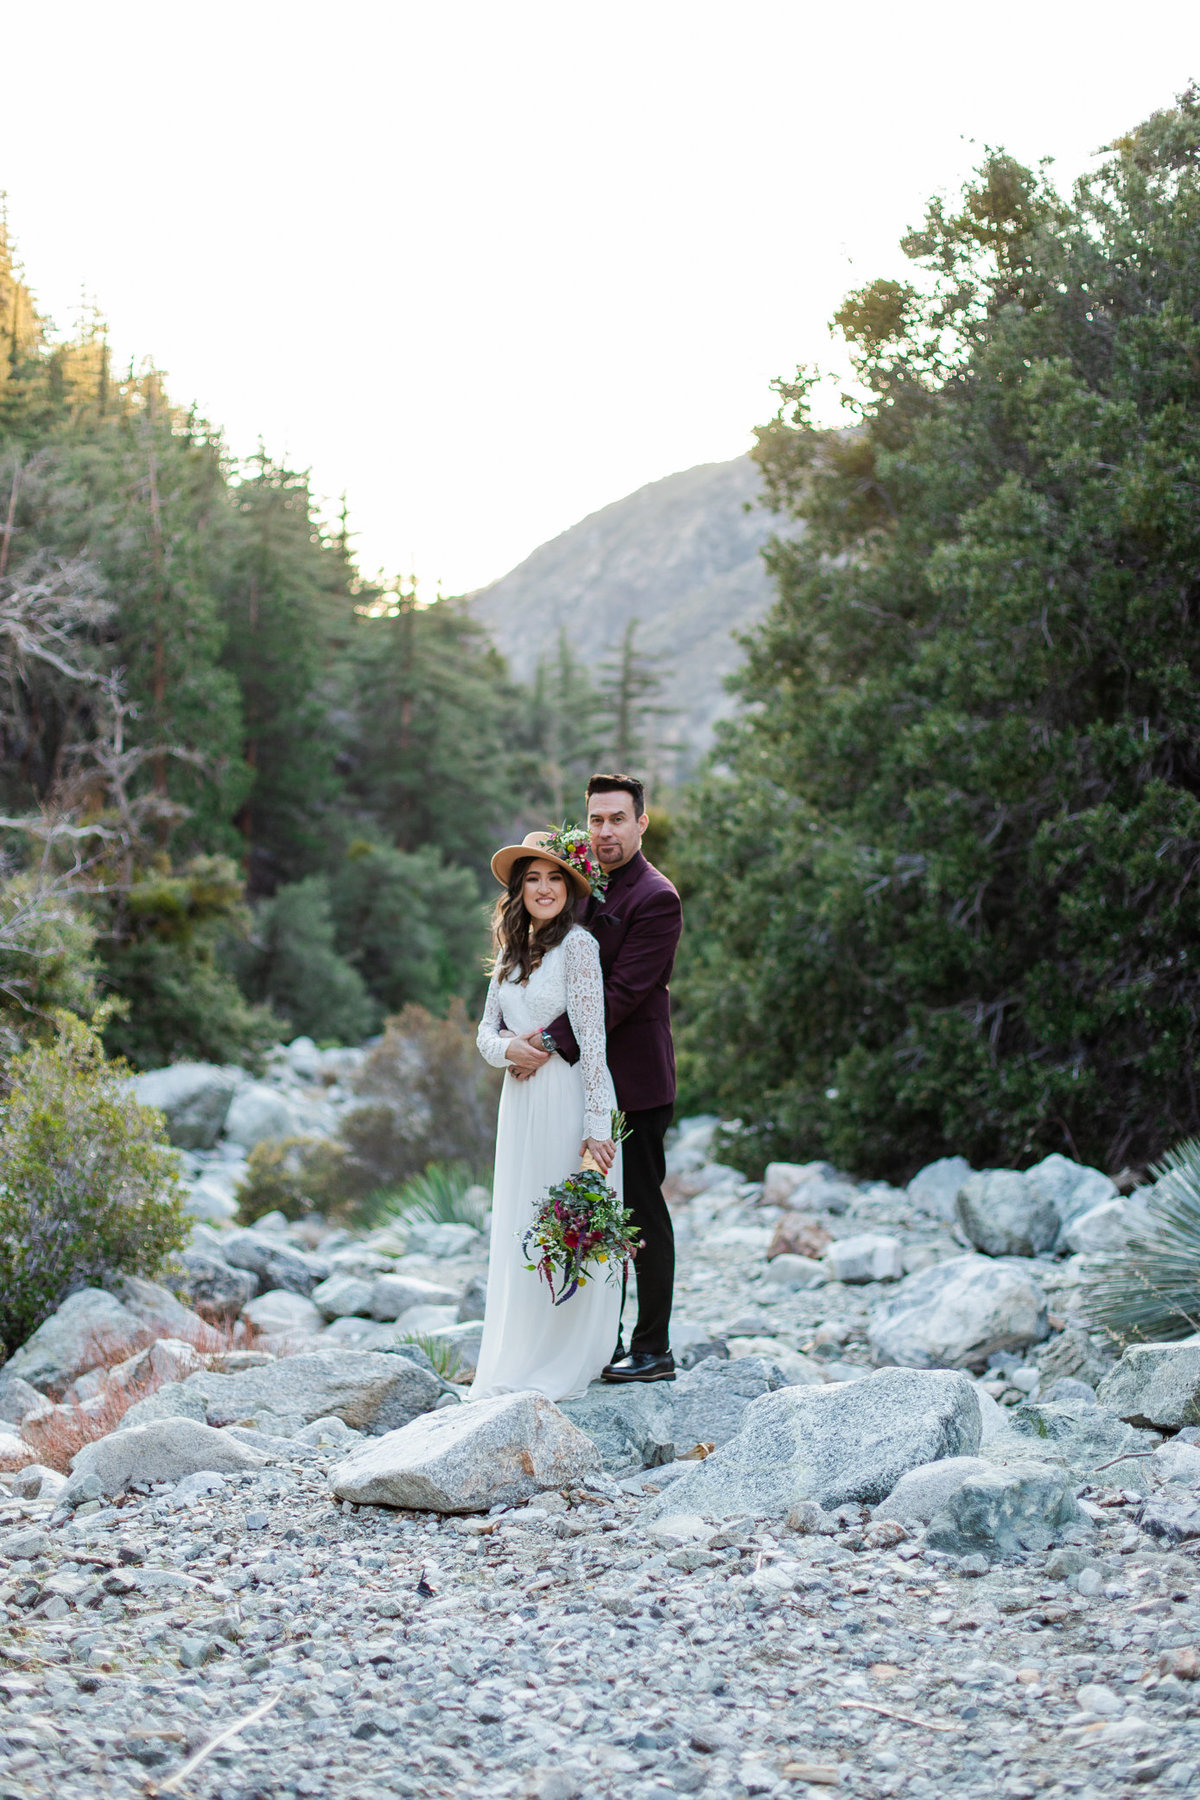 Mt. Baldy Elopement, Mt. Baldy Styled Shoot, Mt. Baldy Wedding, Forest Elopement, Forest Wedding, Boho Wedding, Boho Elopement, Mt. Baldy Boho, Forest Boho, Woodland Boho-38